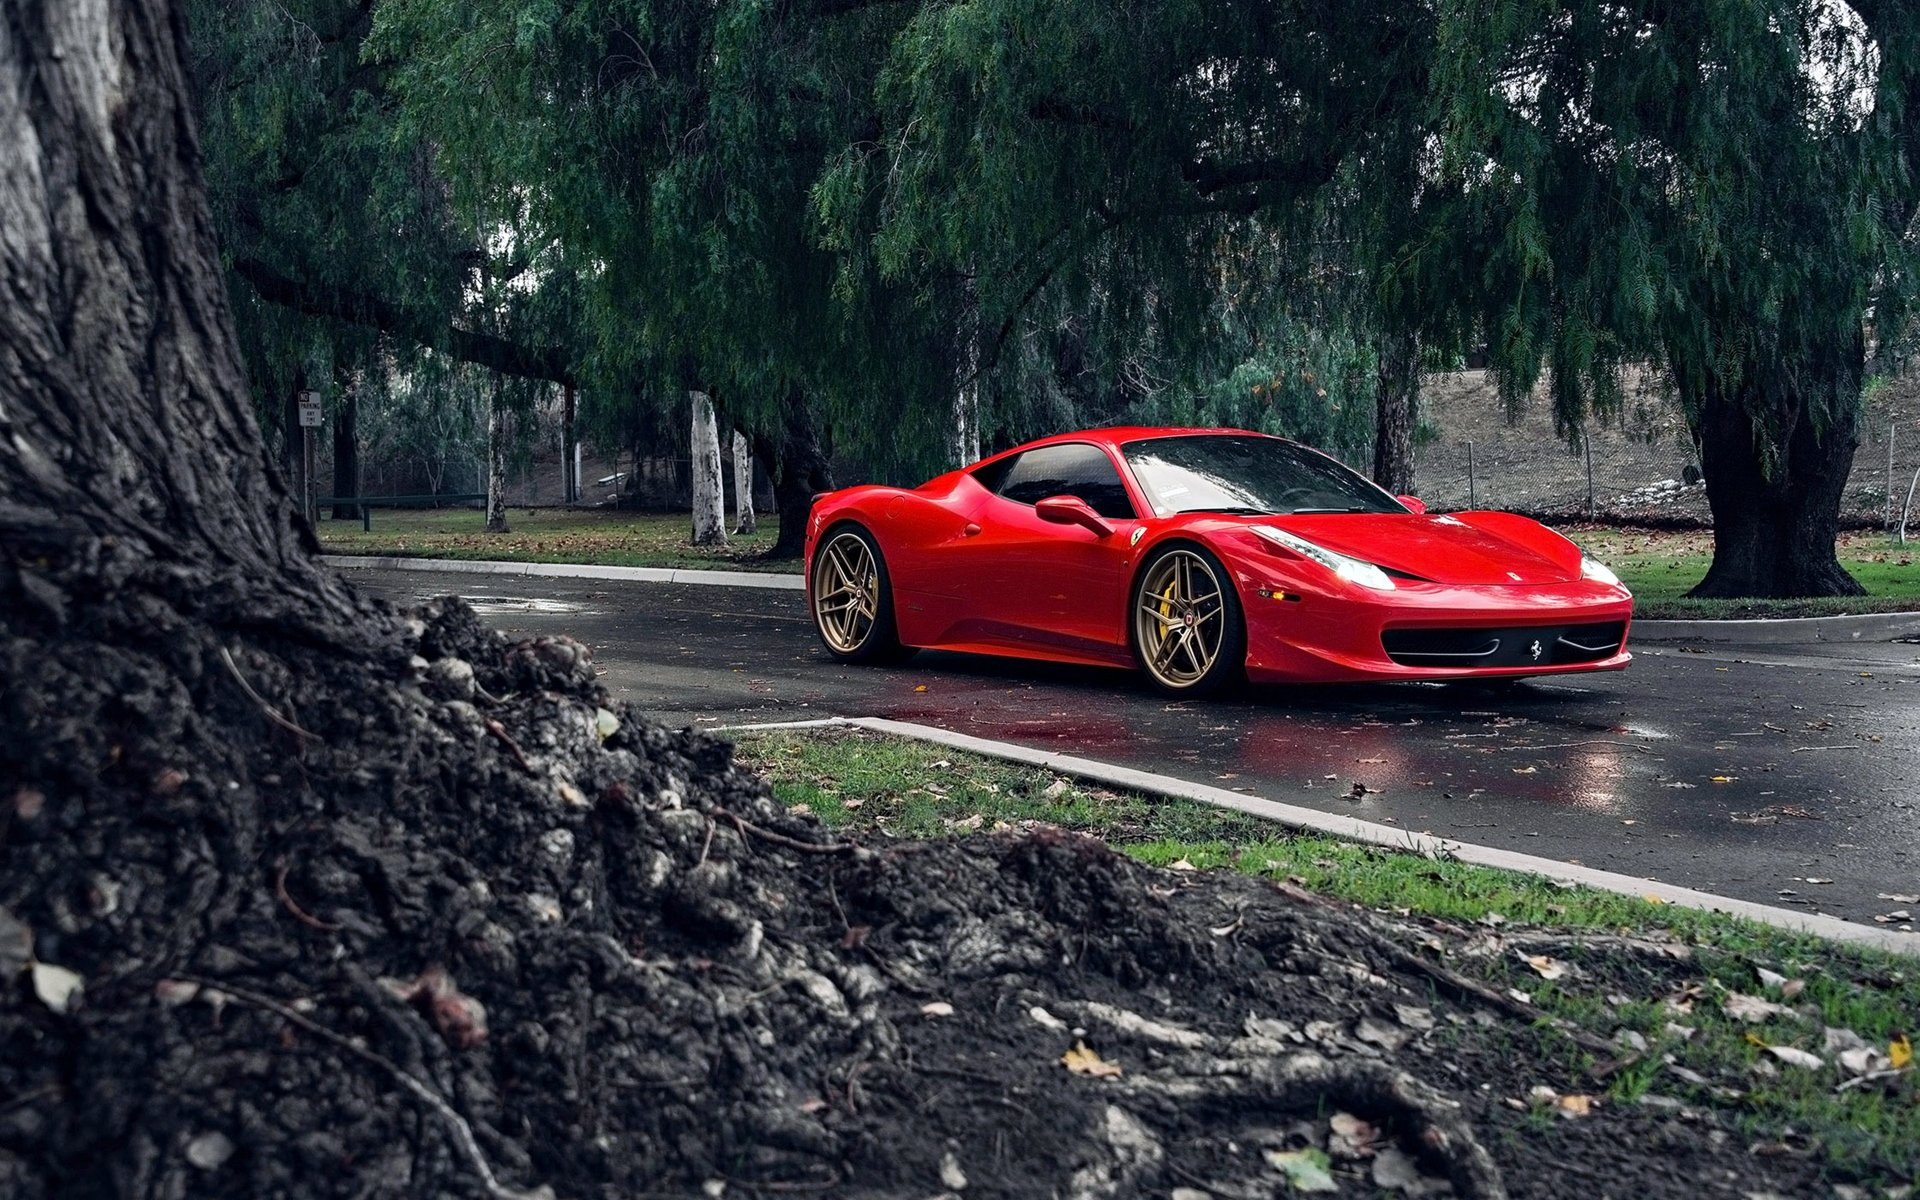 Vehicles - Ferrari 458 Italia  Ferrari 458 Car Red Car Supercar Ferrari Wallpaper